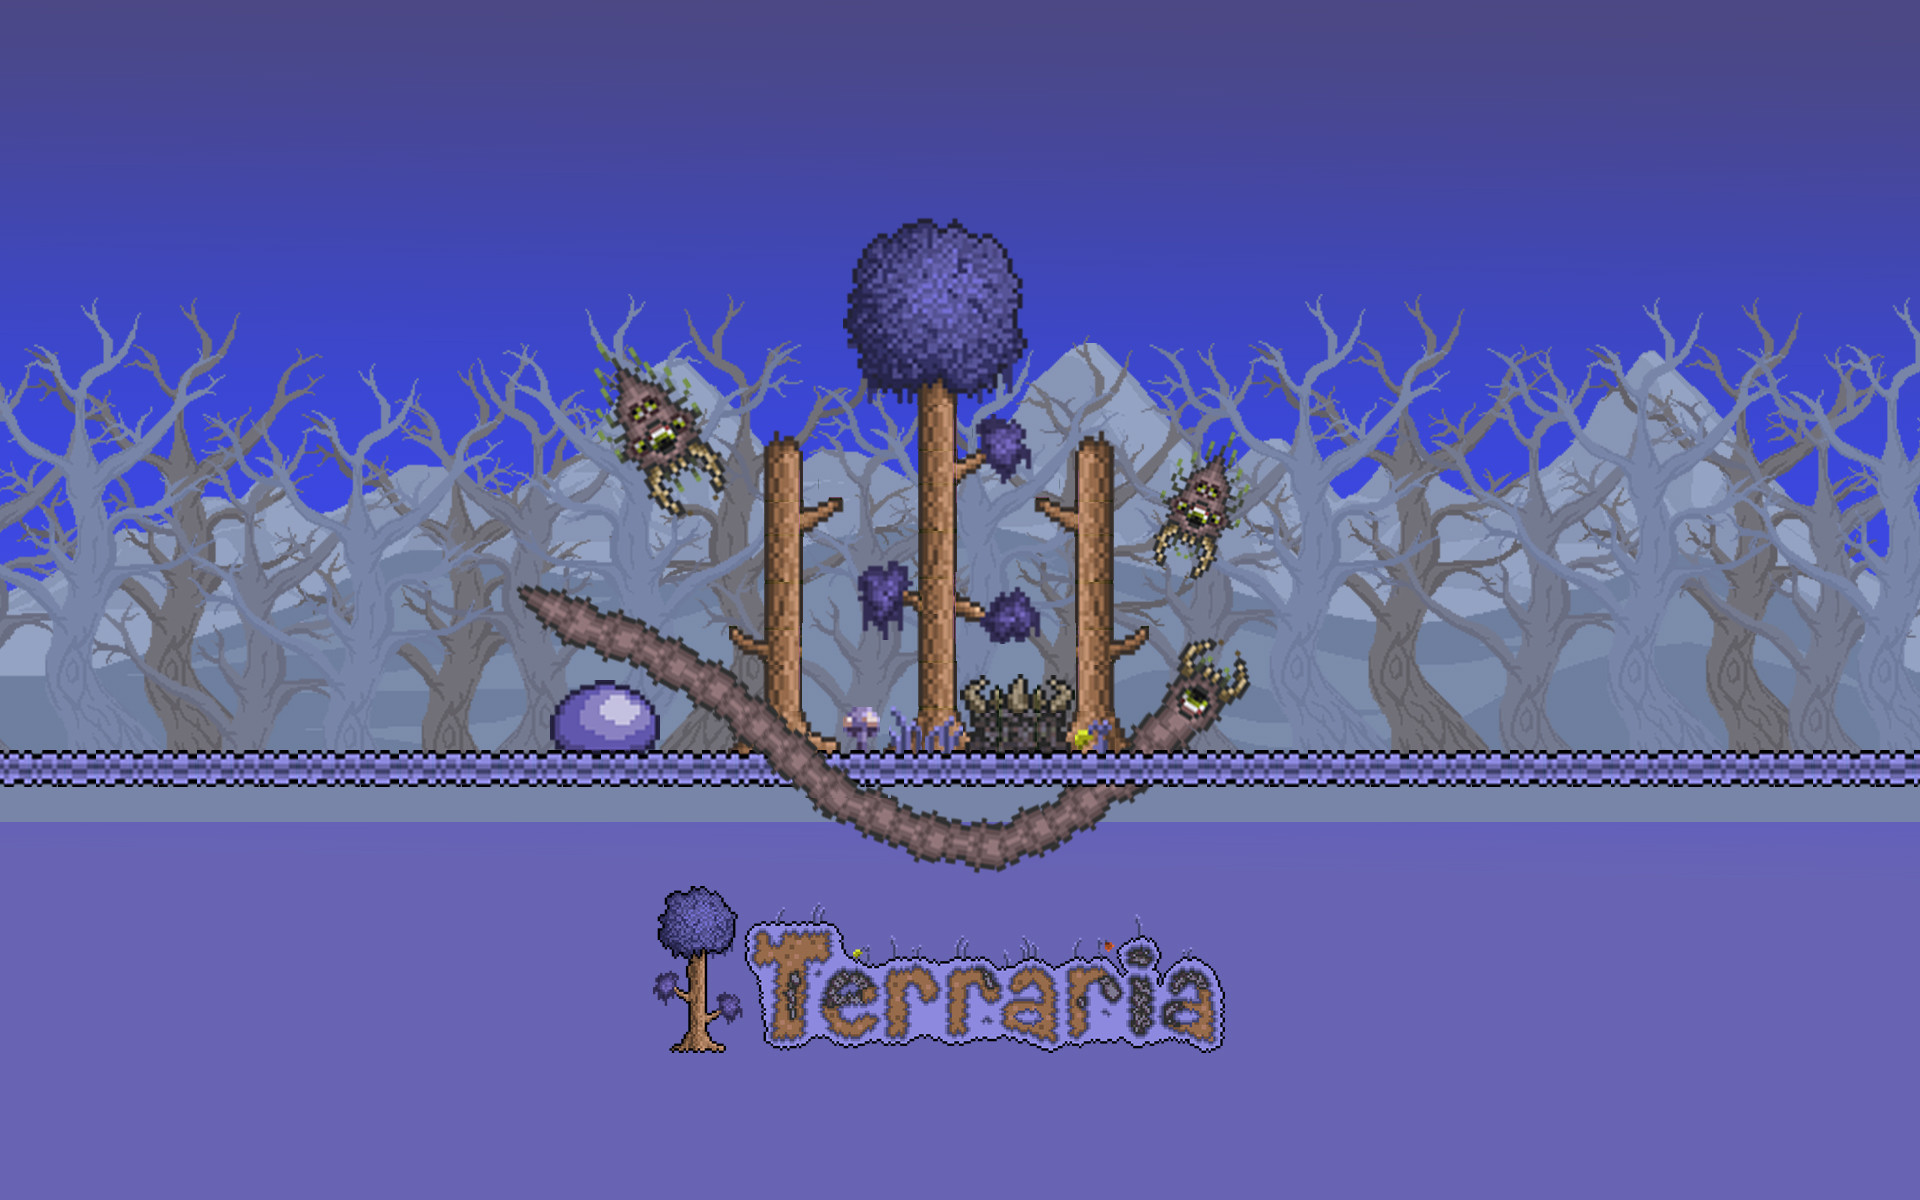 terraria backgrounds